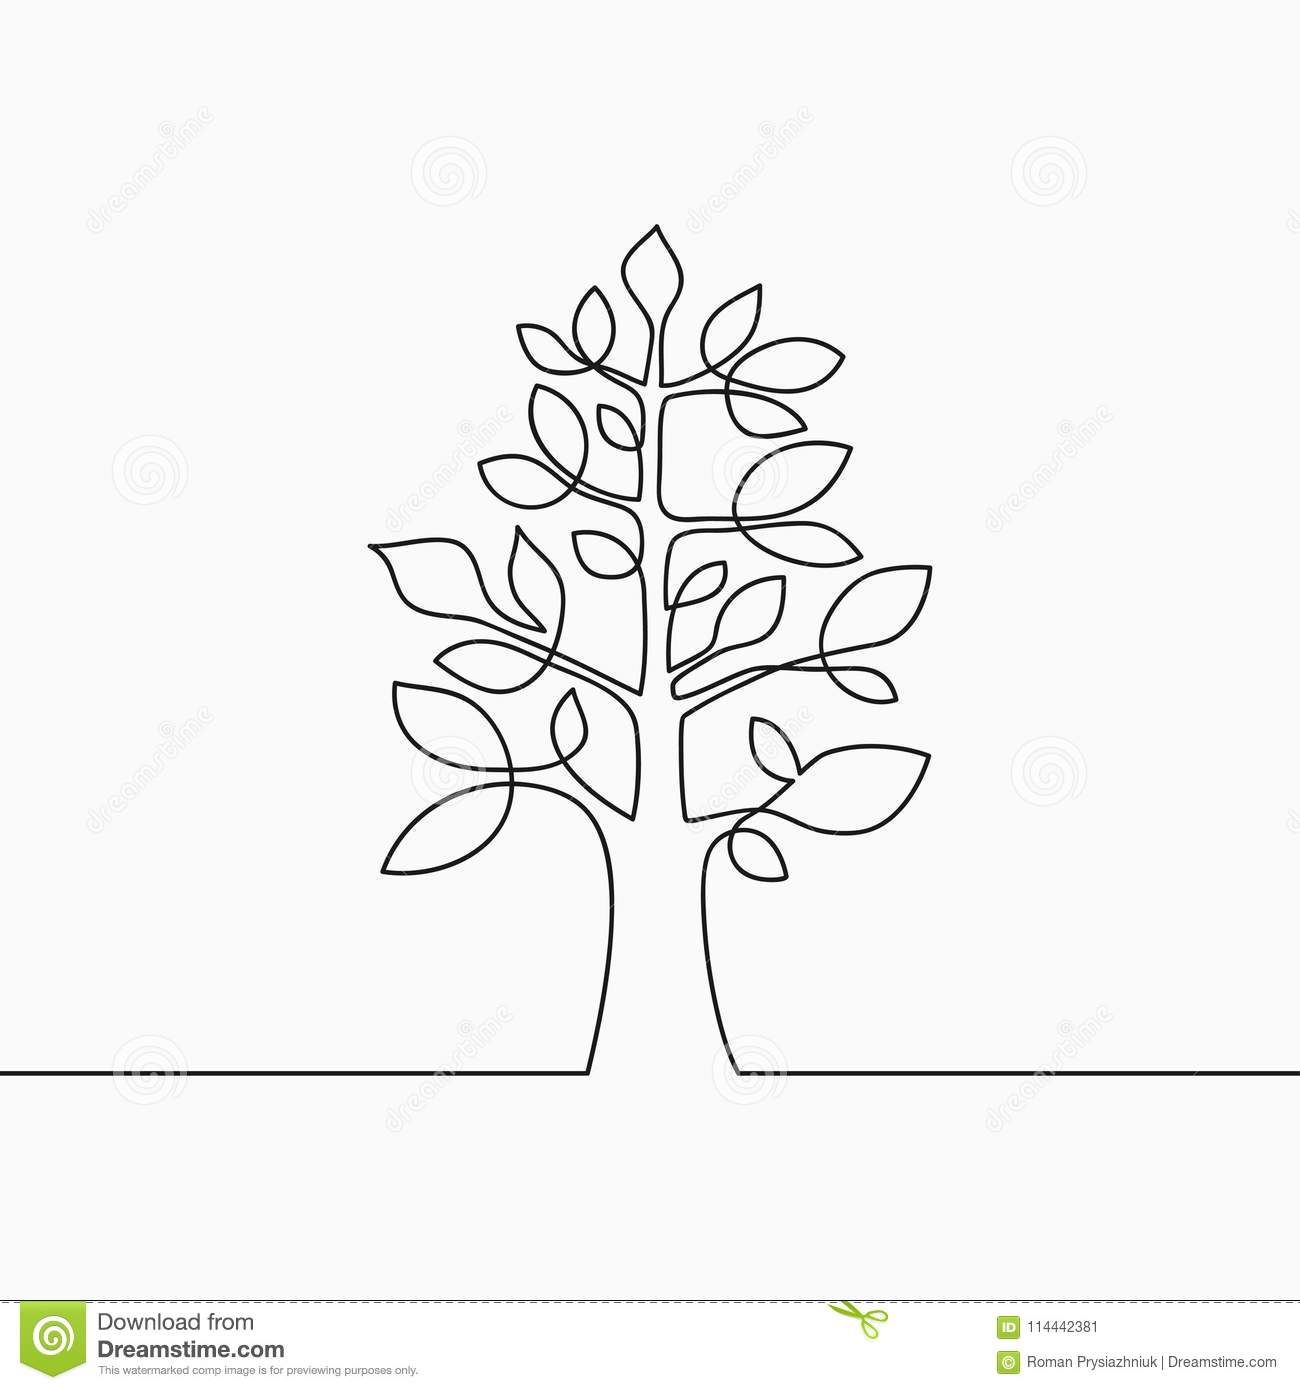 Continuous Line Drawing Of Tree With Leaf. One Line Wood